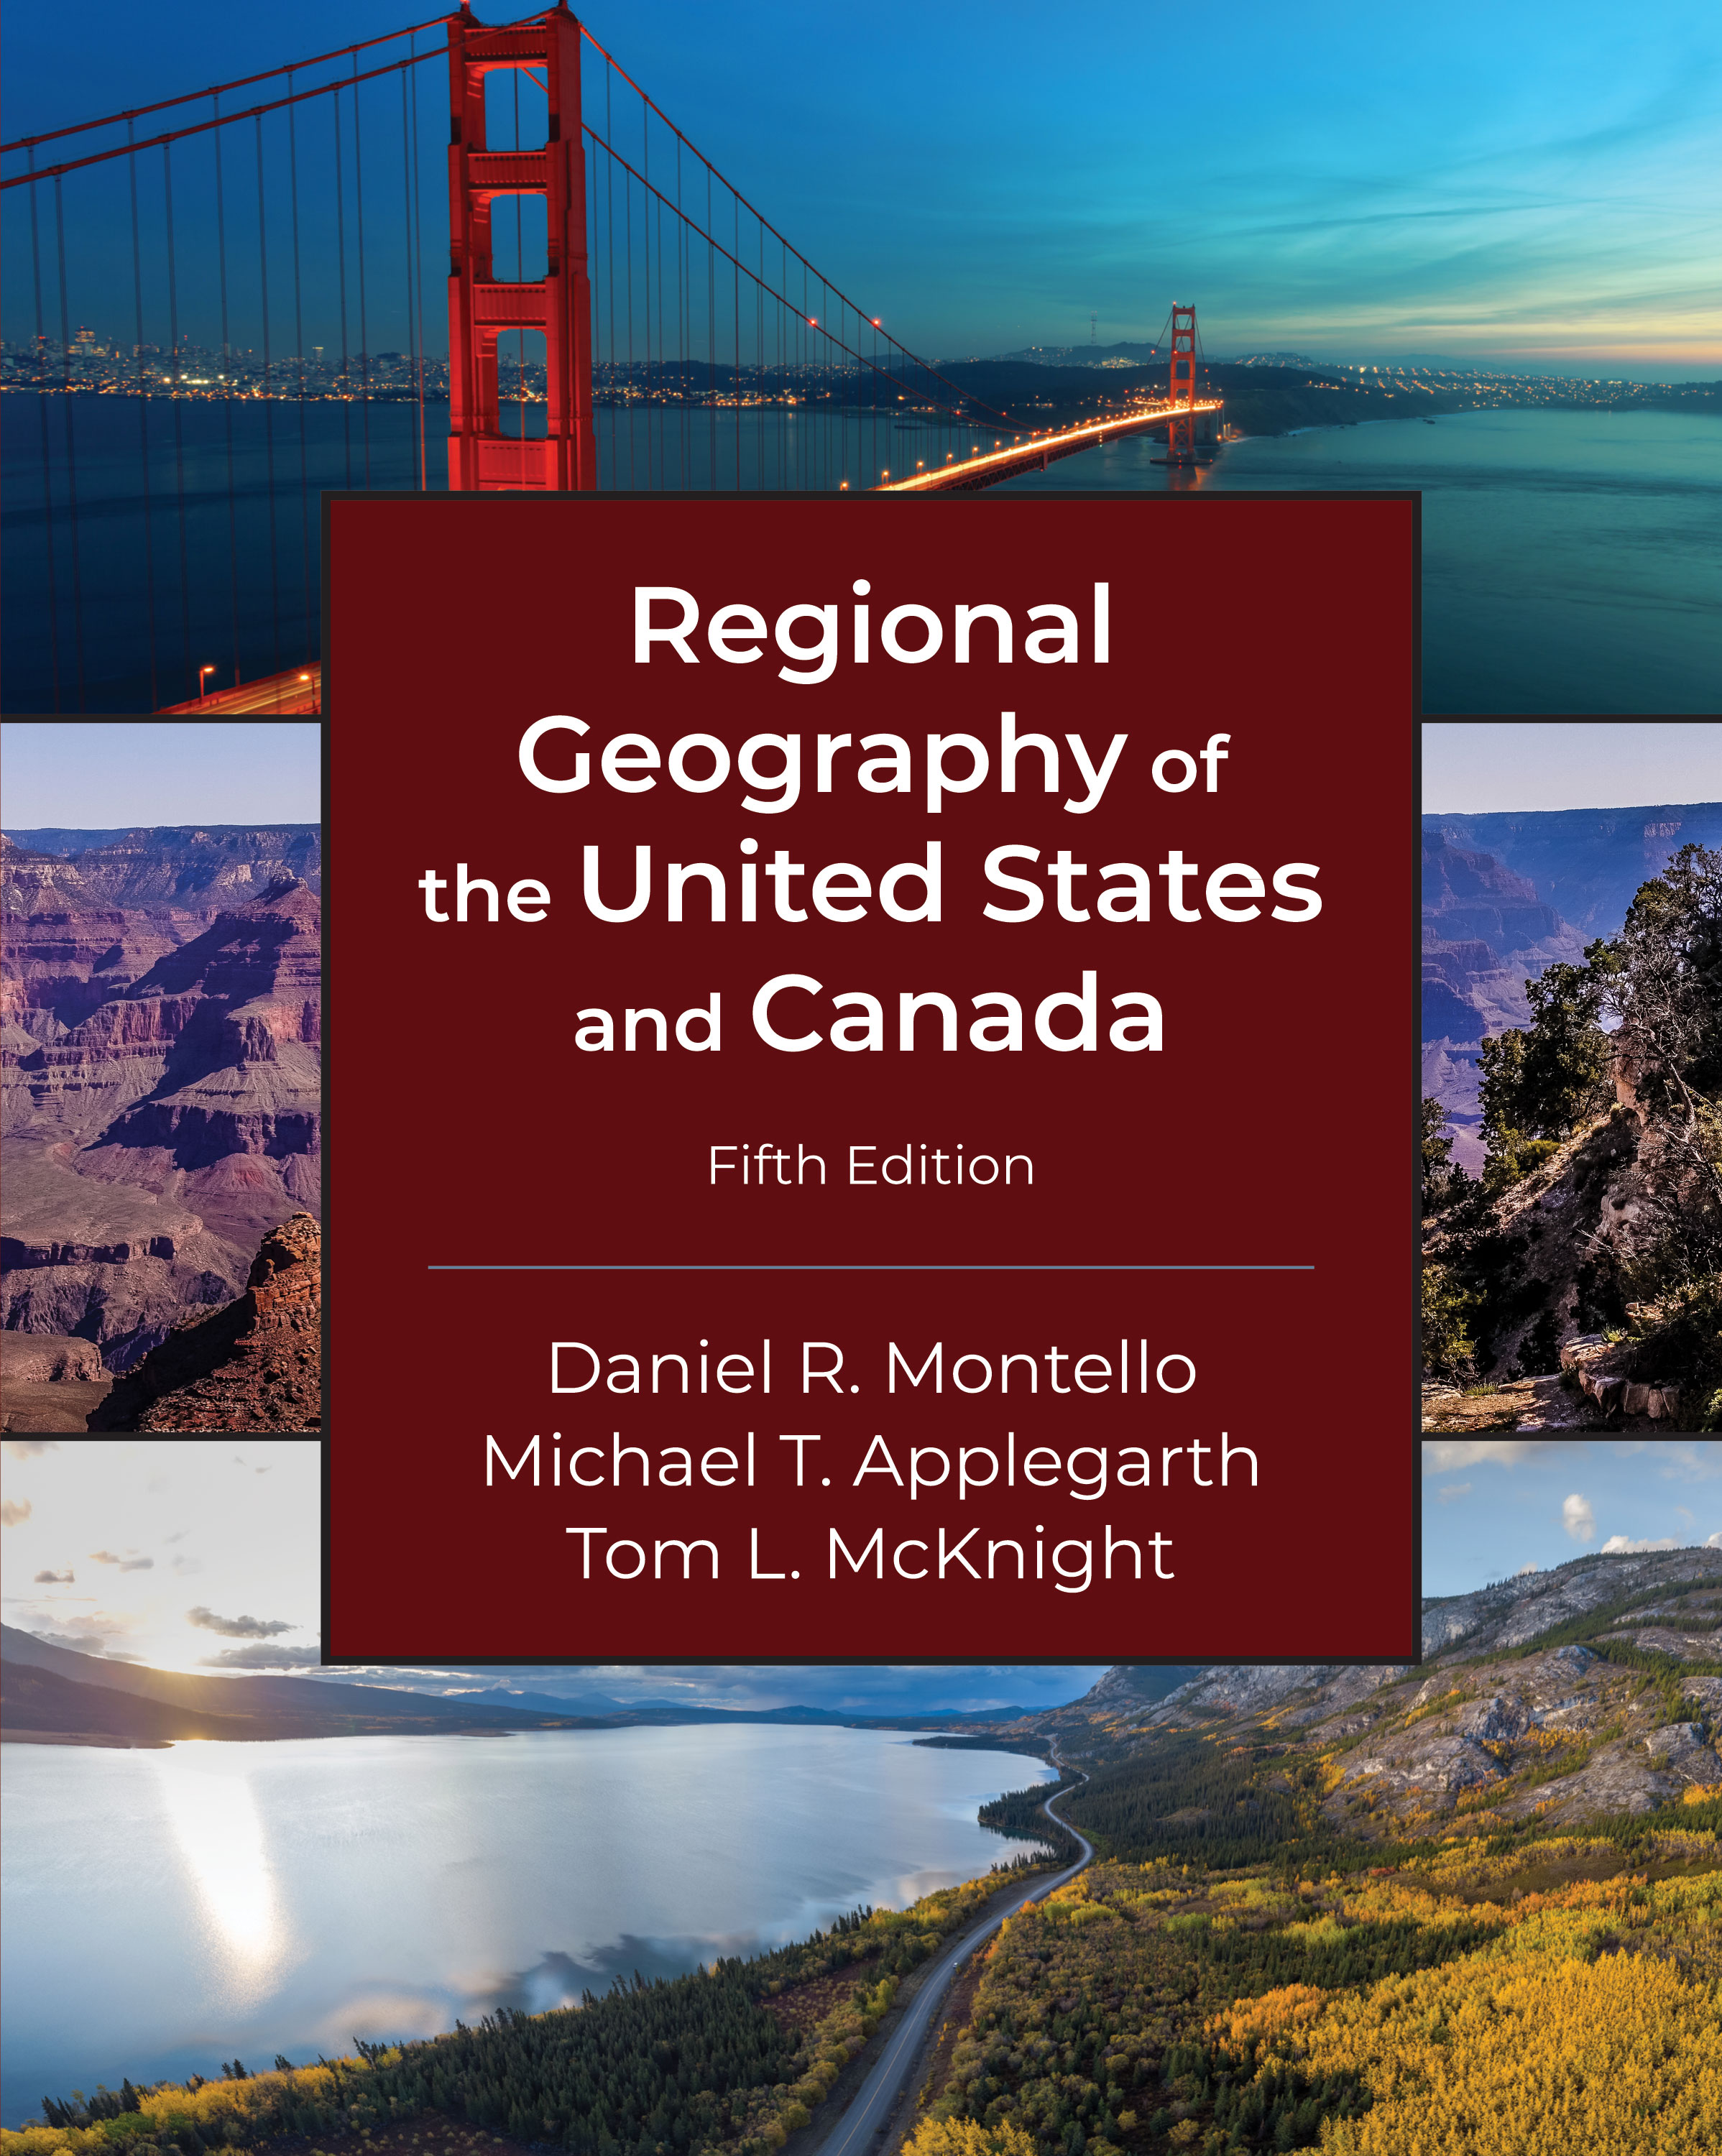 Regional Geography of the United States and Canada: Fifth Edition by Daniel R. Montello, Michael T. Applegarth, Tom L. McKnight